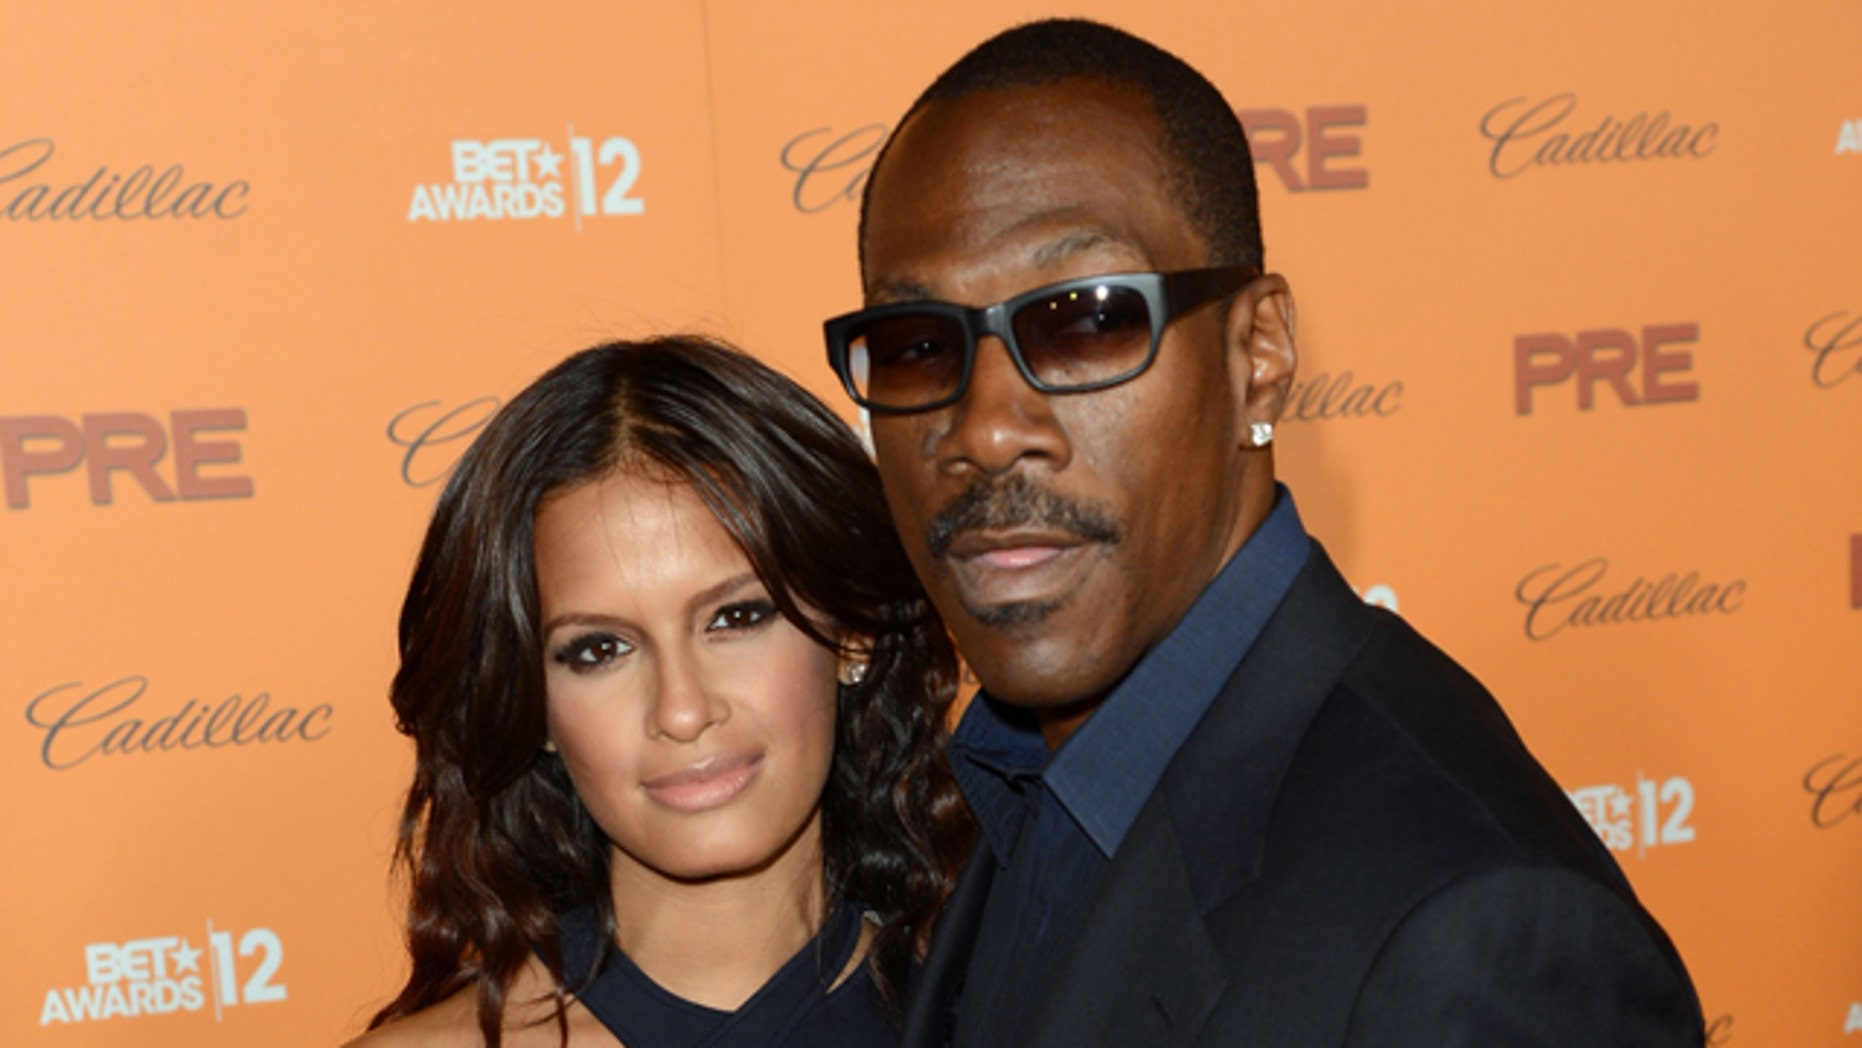 LOS ANGELES, CA - JUNE 30:  (L-R) TV personality Rocsi Diaz and actor Eddie Murphy arrive at Debra Lee's Pre-BET Awards Celebration during the 2012 BET Awards at Union Station on June 30, 2012 in Los Angeles, California.  (Photo by Jason Merritt/Getty Images For BET)